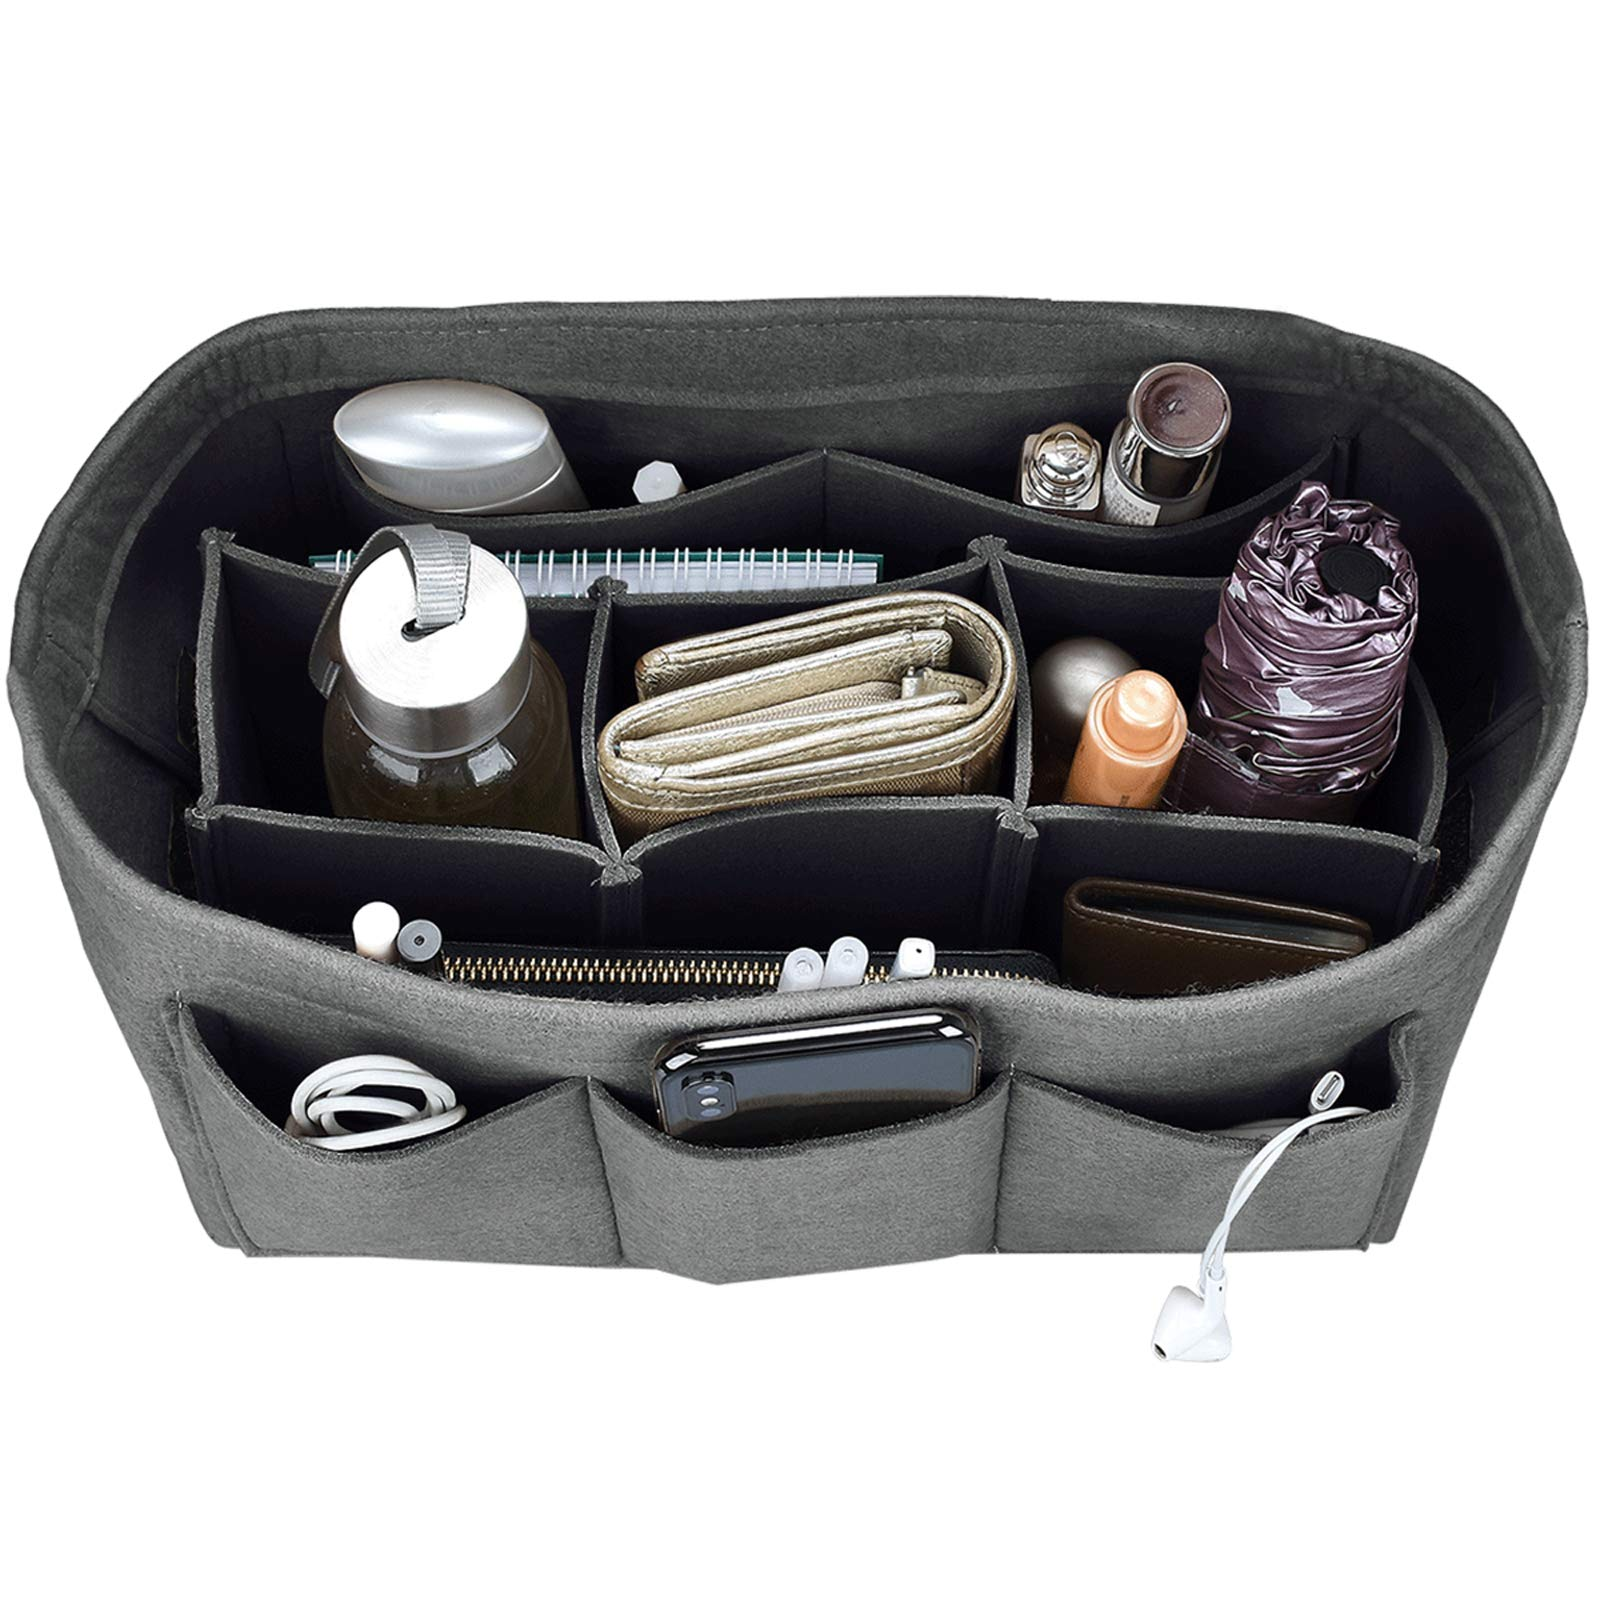 Felt Purse Insert Organizer, Handbag organizer, Bag in Bag for Handbag Purse Tote, Diaper Bag Organizer, Stand on Its Own, 12 Compartments, 4 Sizes (X-Large, Gray)